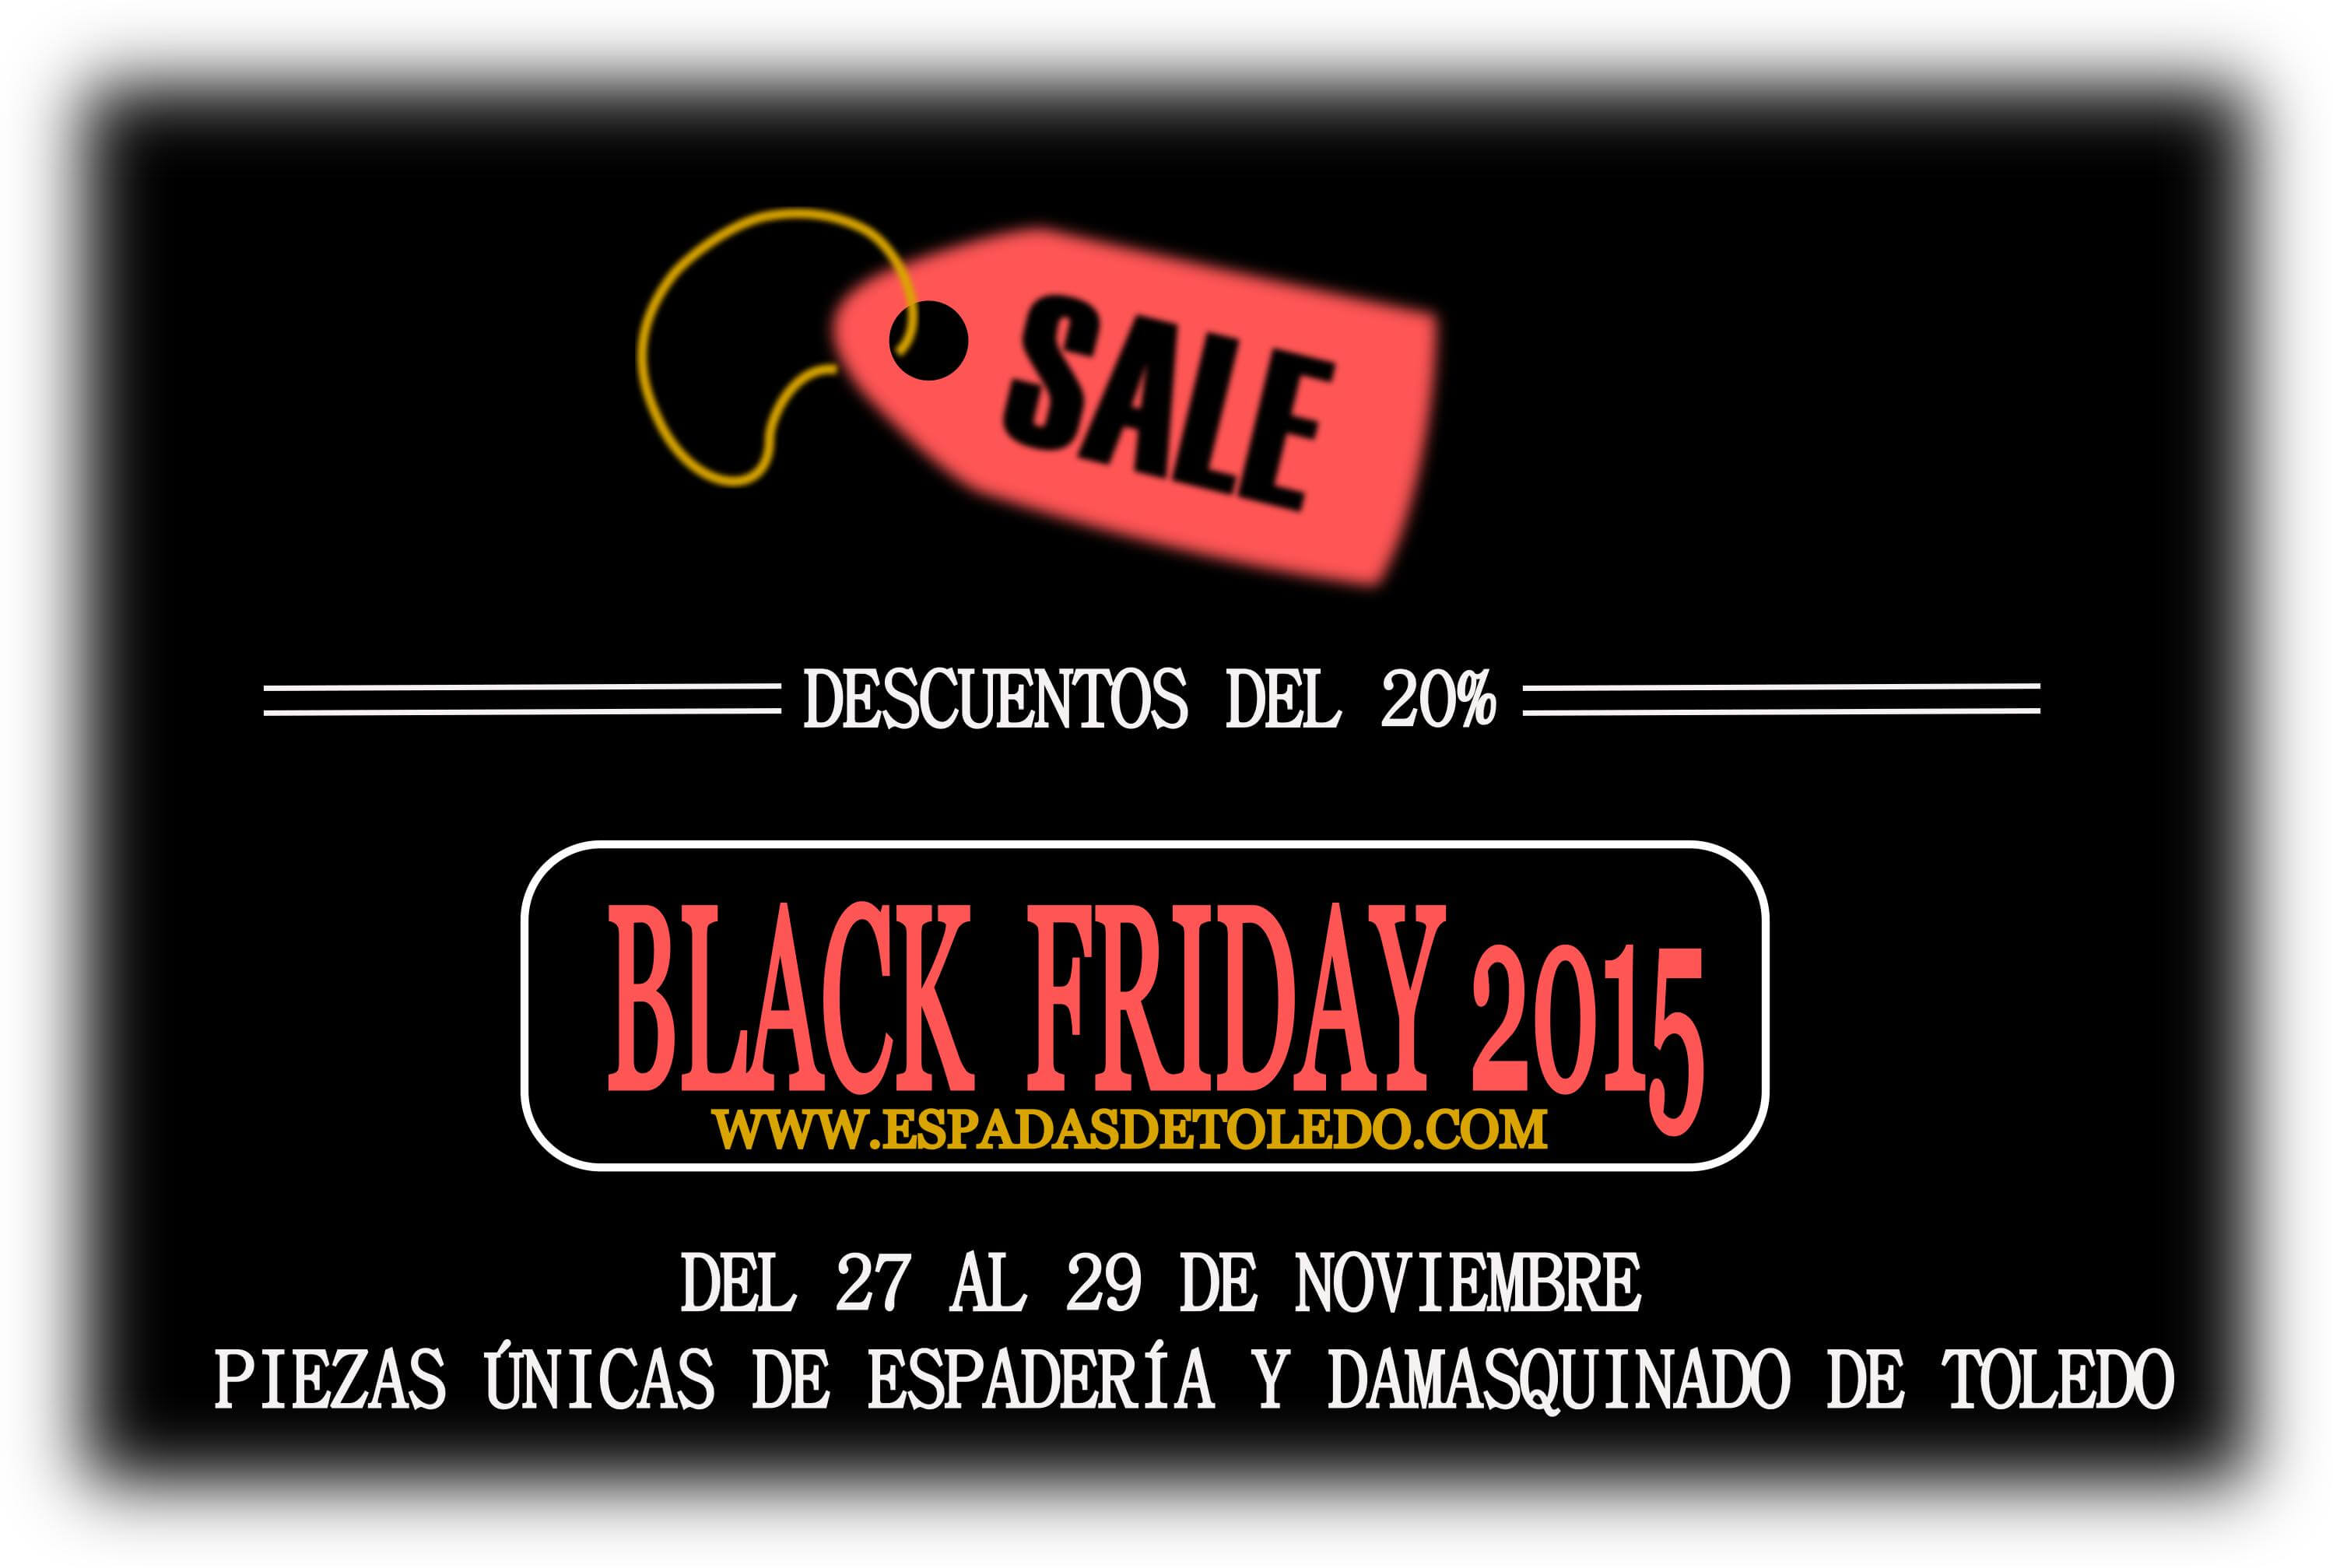 Espadas y damasquinado de Toledo. Black friday 2015.